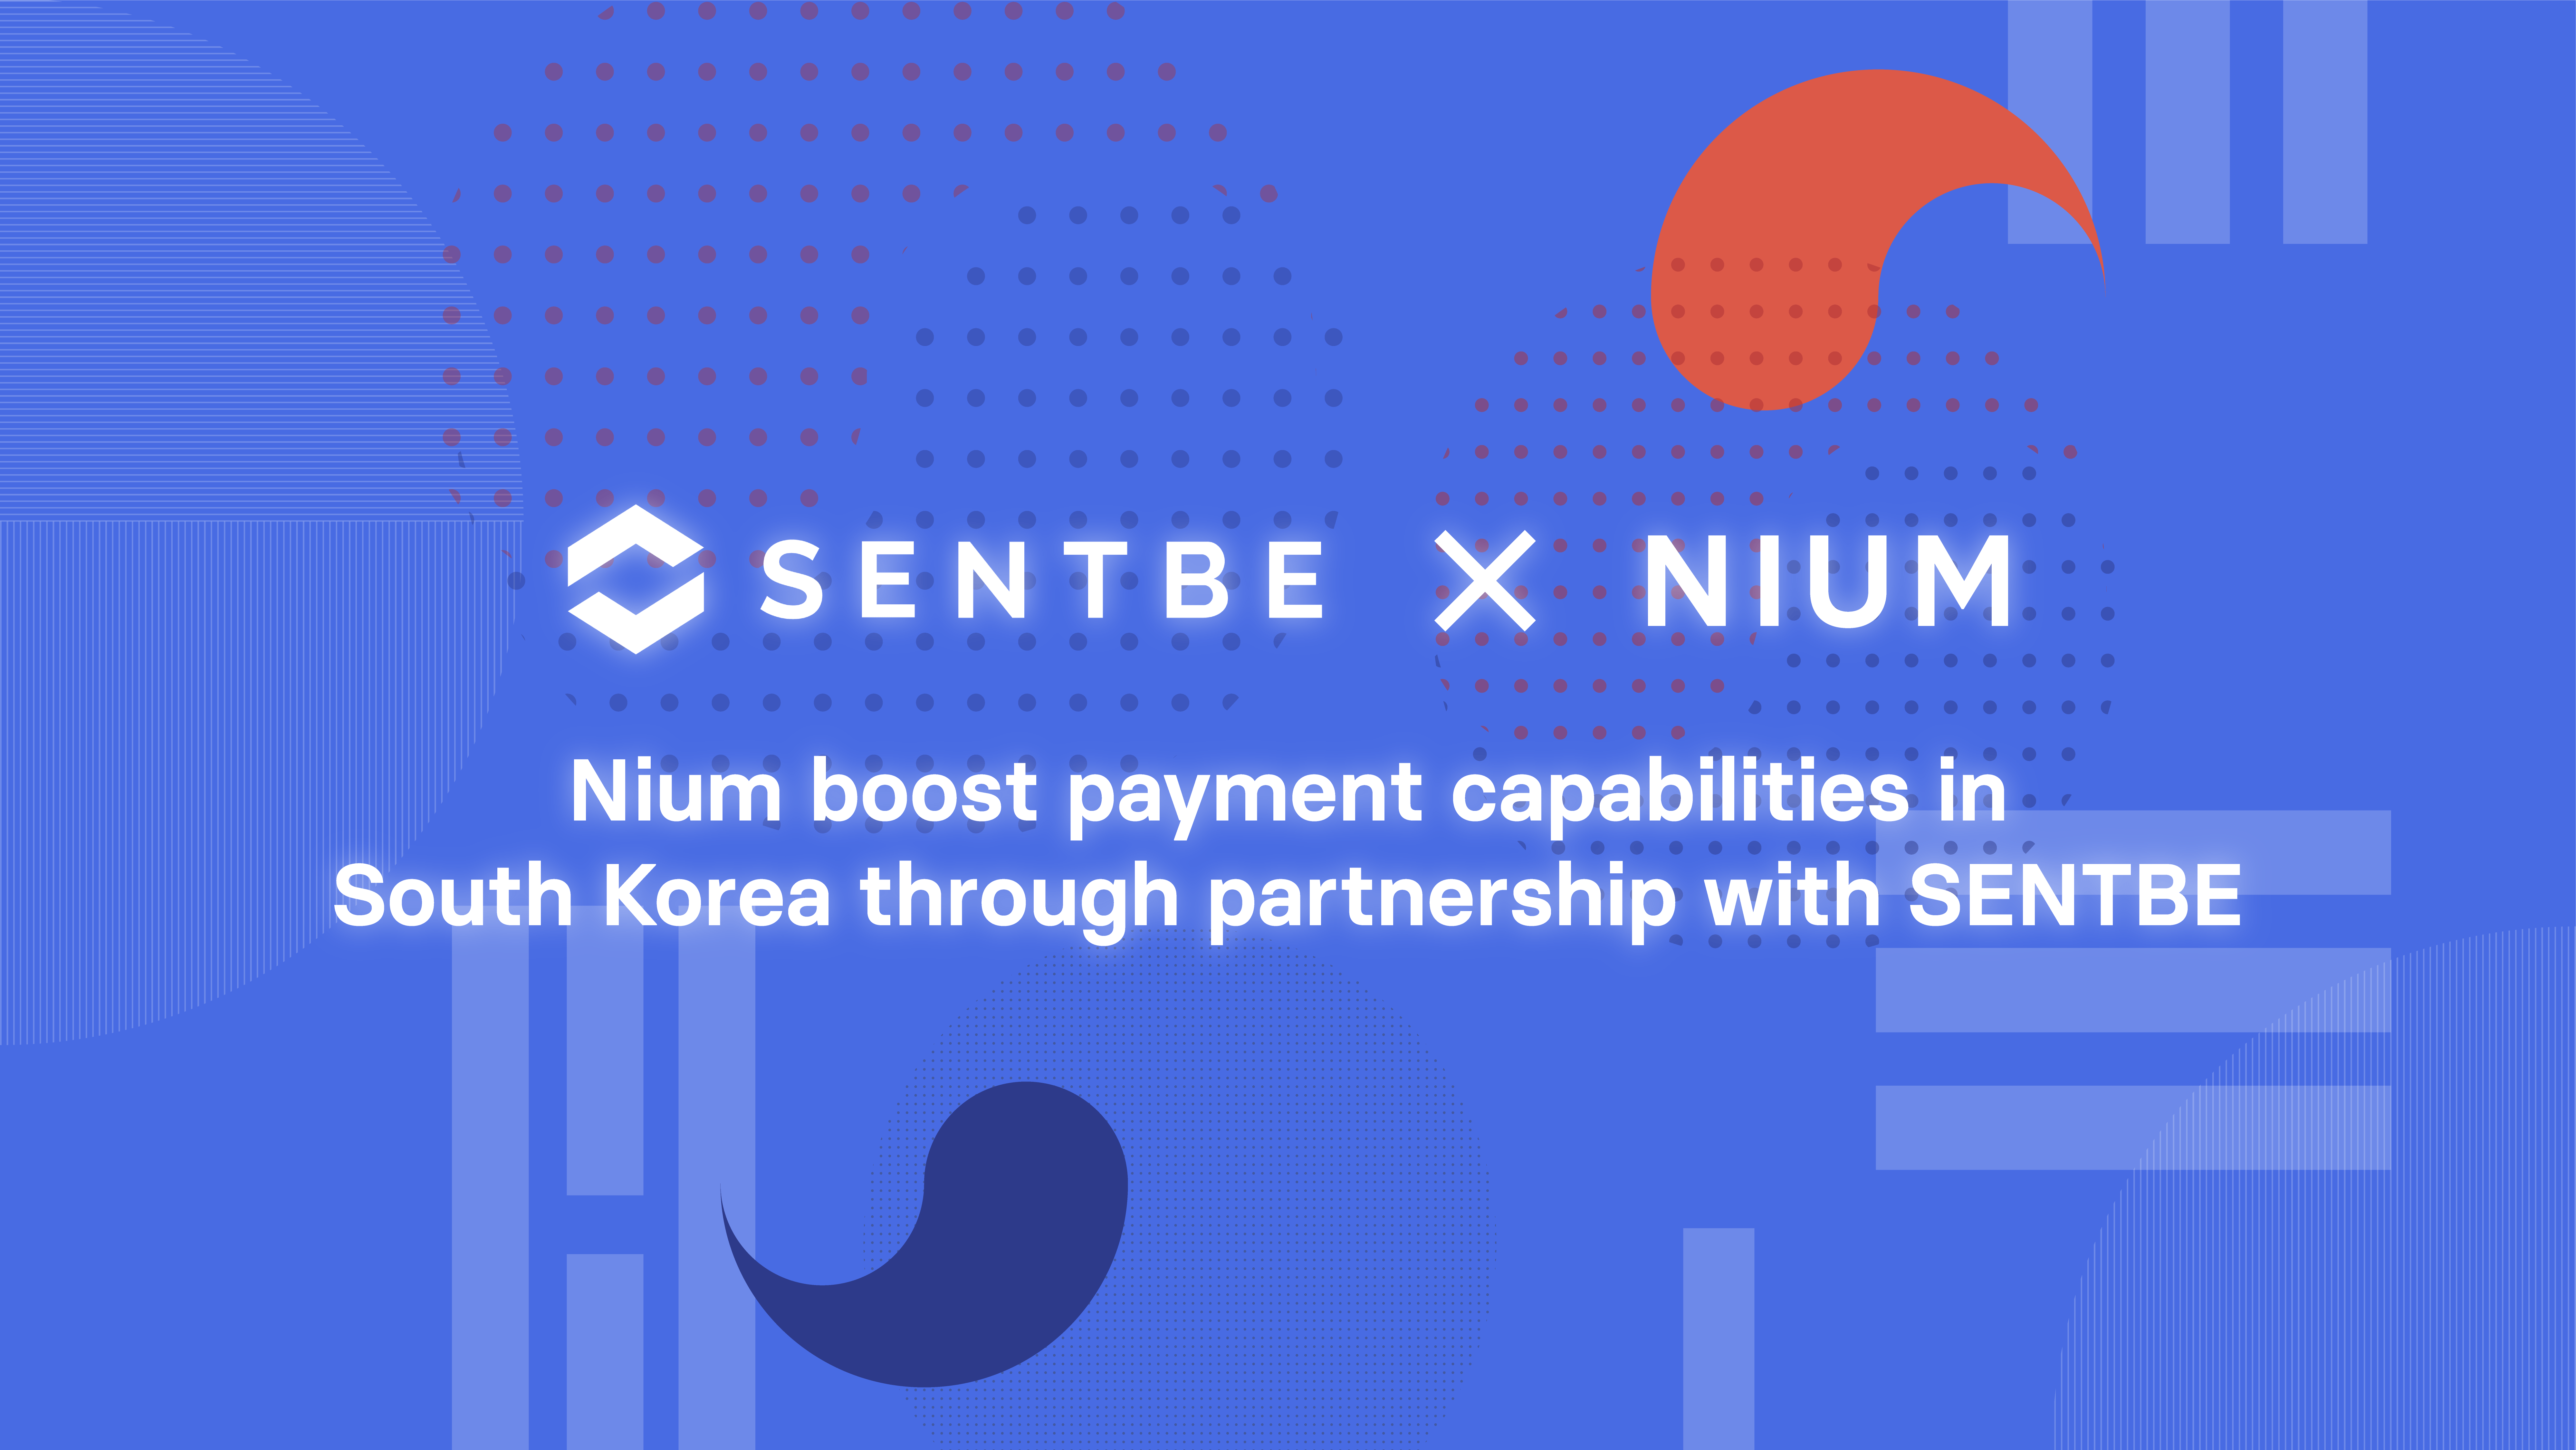 Global payments platform Nium boosts payment capabilities in South Korea through partnership with SENTBE